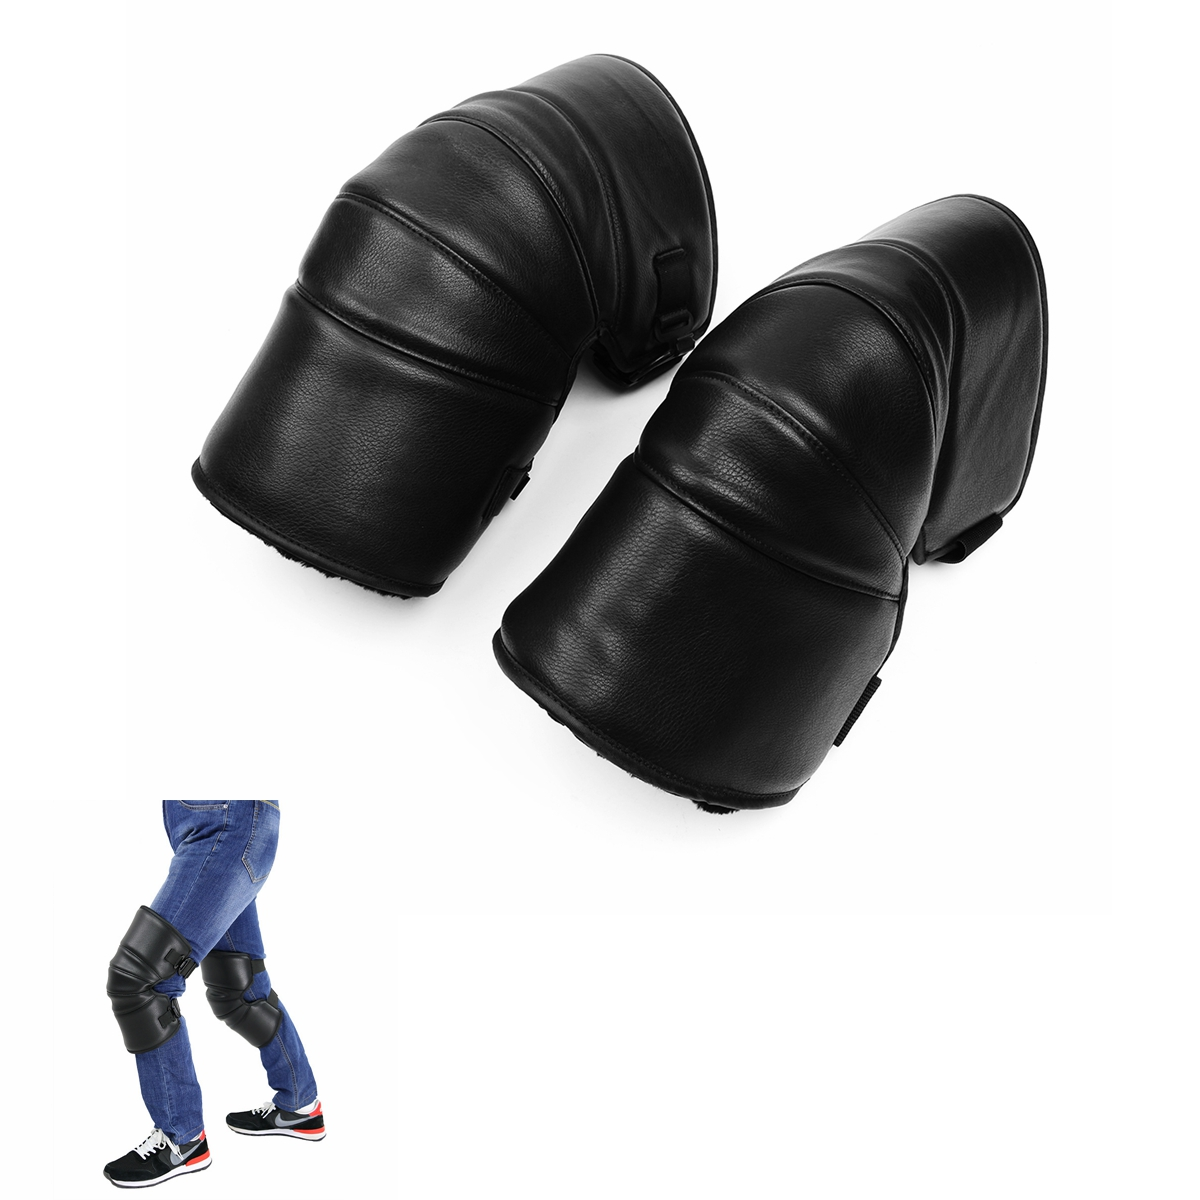 Motorcycle Protect Thick Warm Knee Pads Winter Co